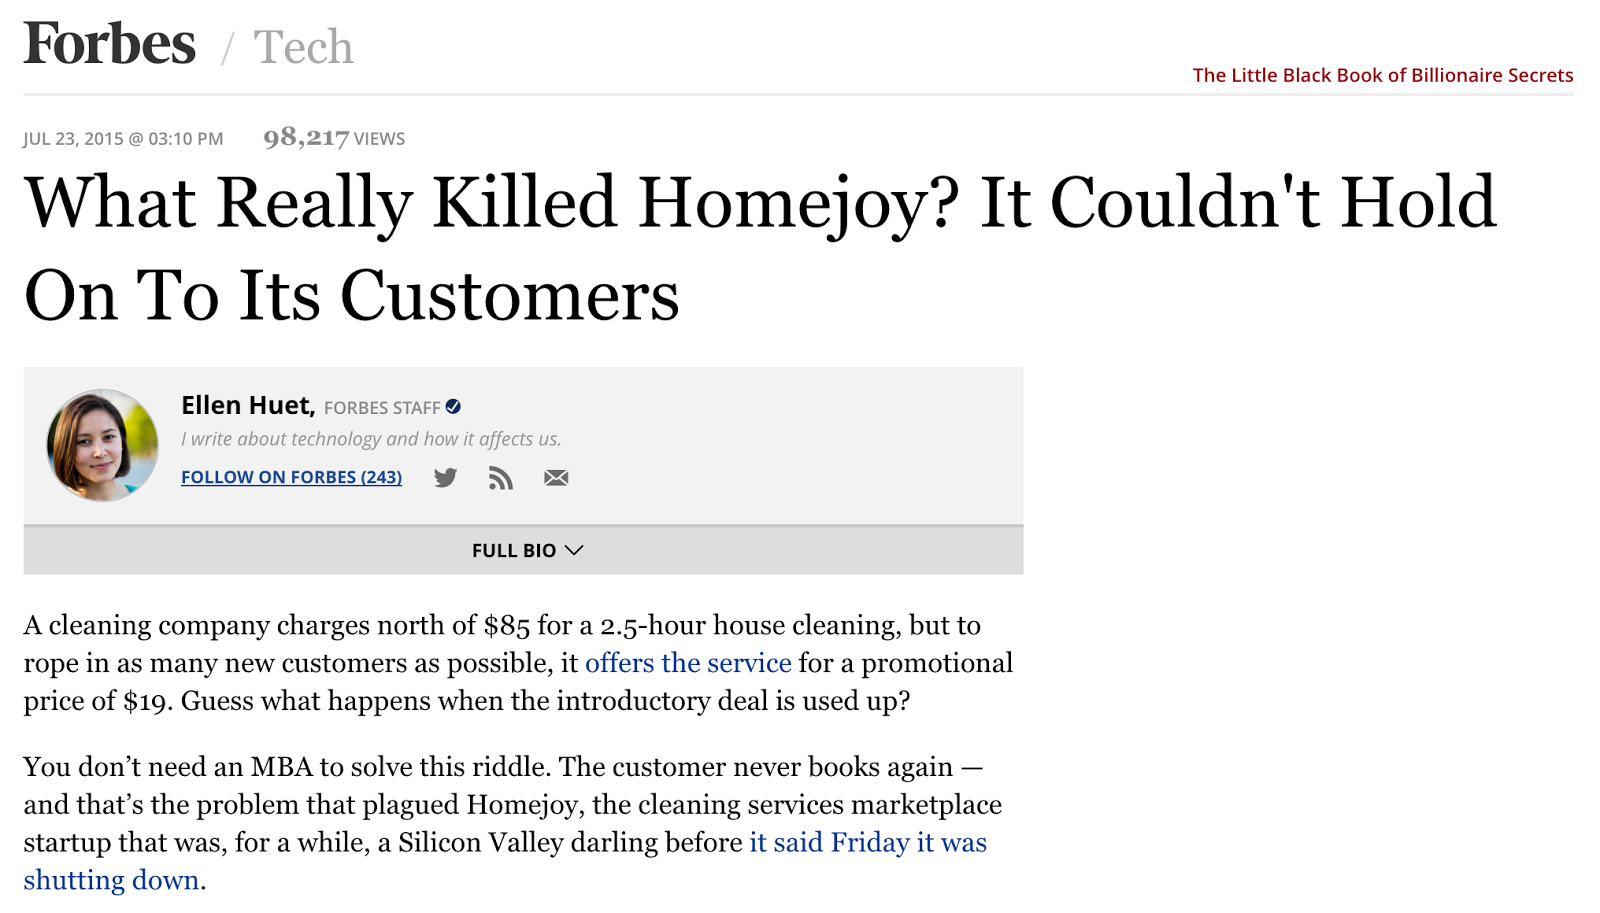 New Story - Homejoy announces its shut down